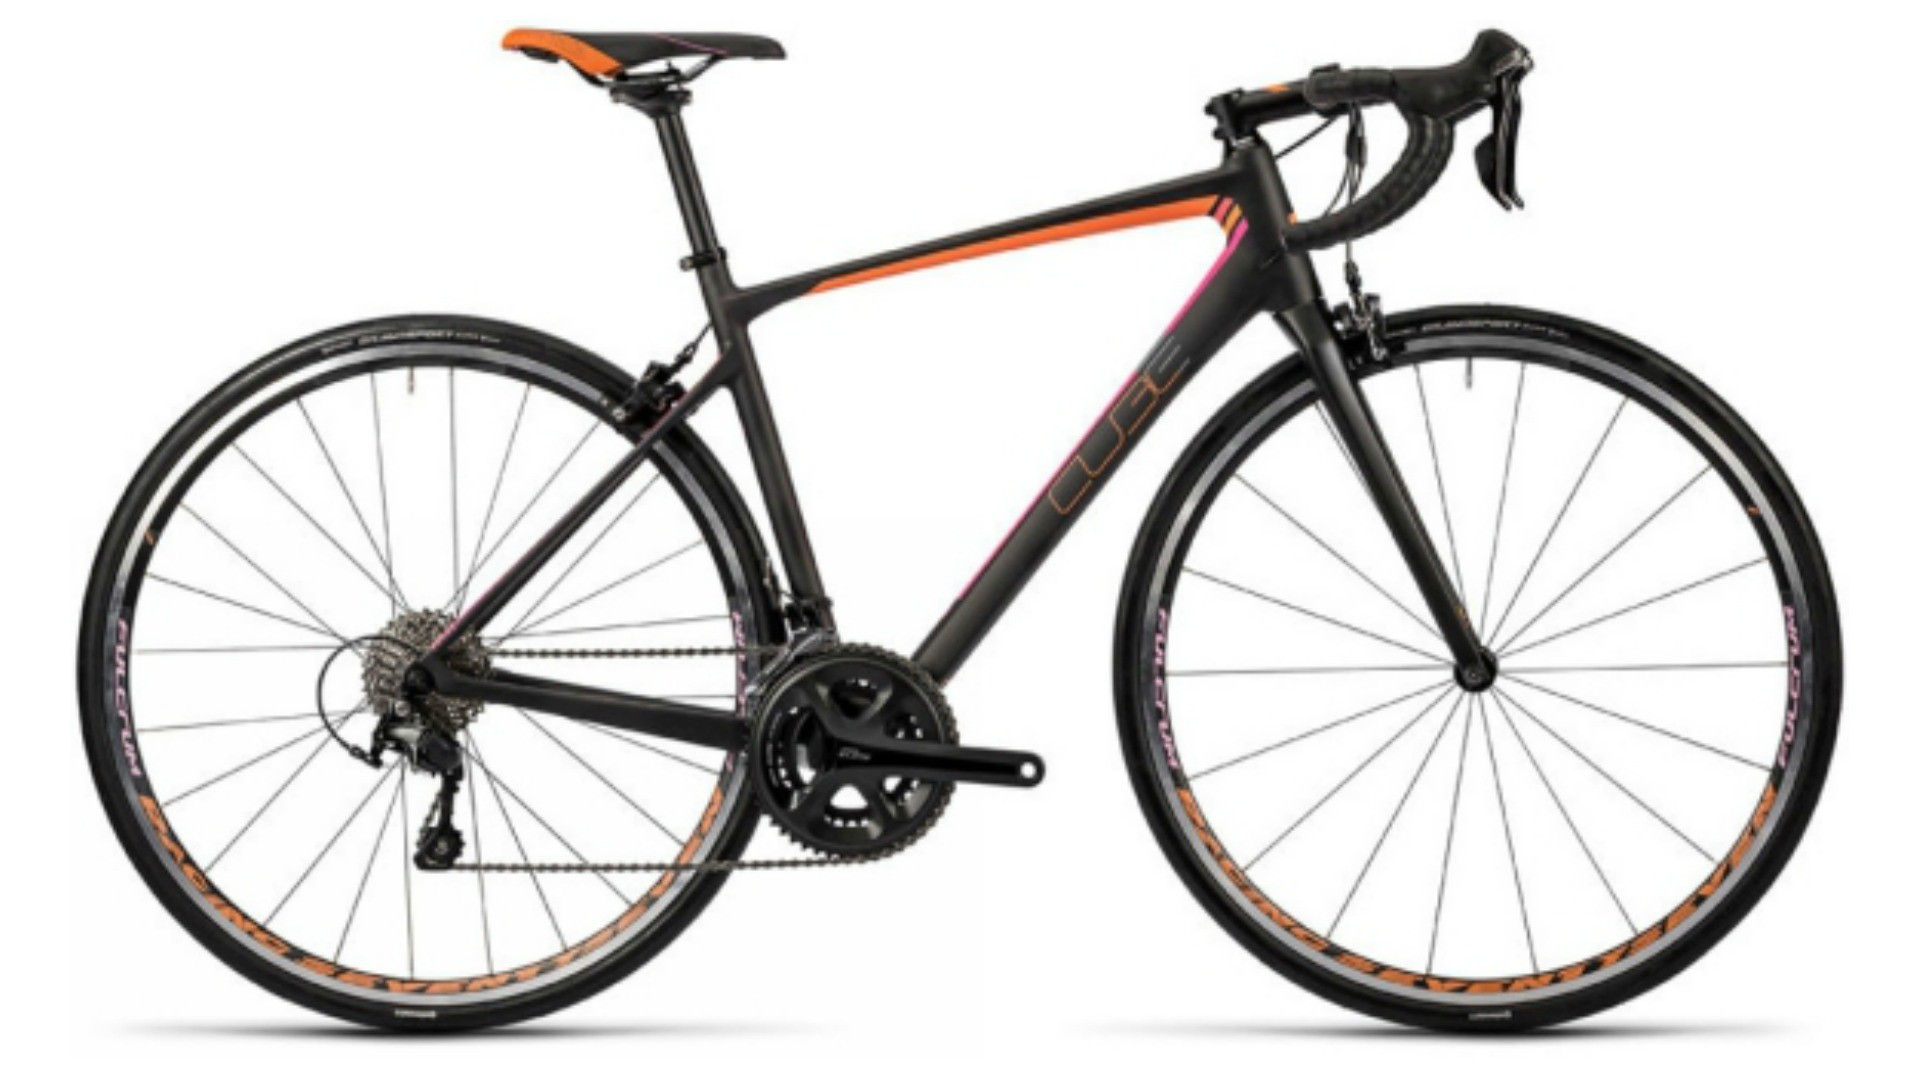 The Cube Axial represents excellent value for money for a women's specific bike